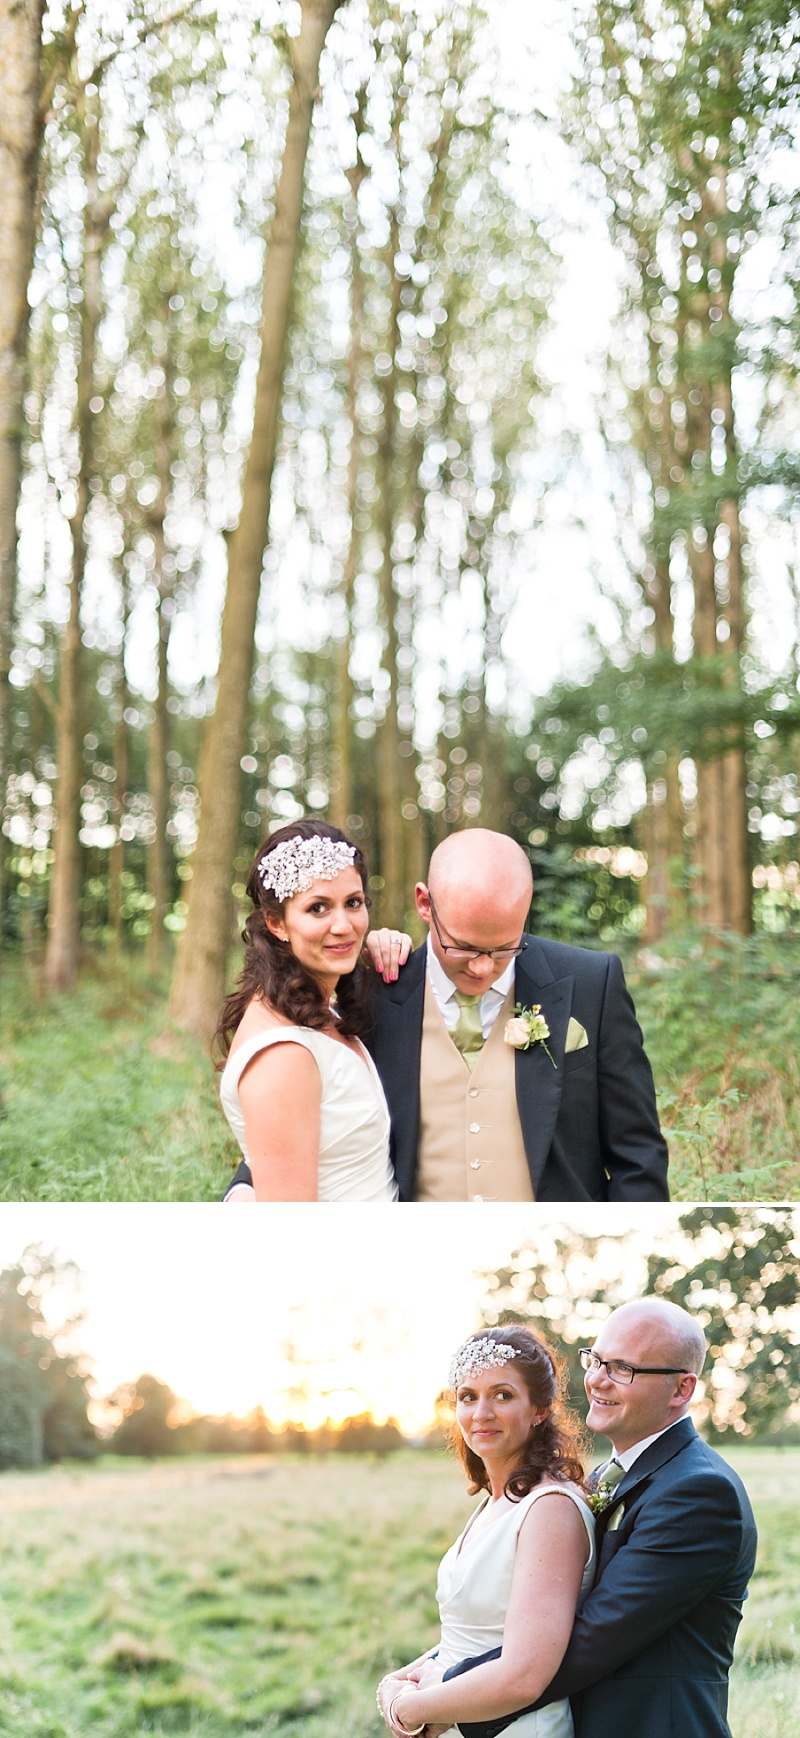 Elegant Wedding In Worcestershire With Vintage Touches Bride In Caroline Castigliano Gown with Rachel Simpson Shoes and a Hermione Harbutt Headpiece, Images by Anushe Low_0012